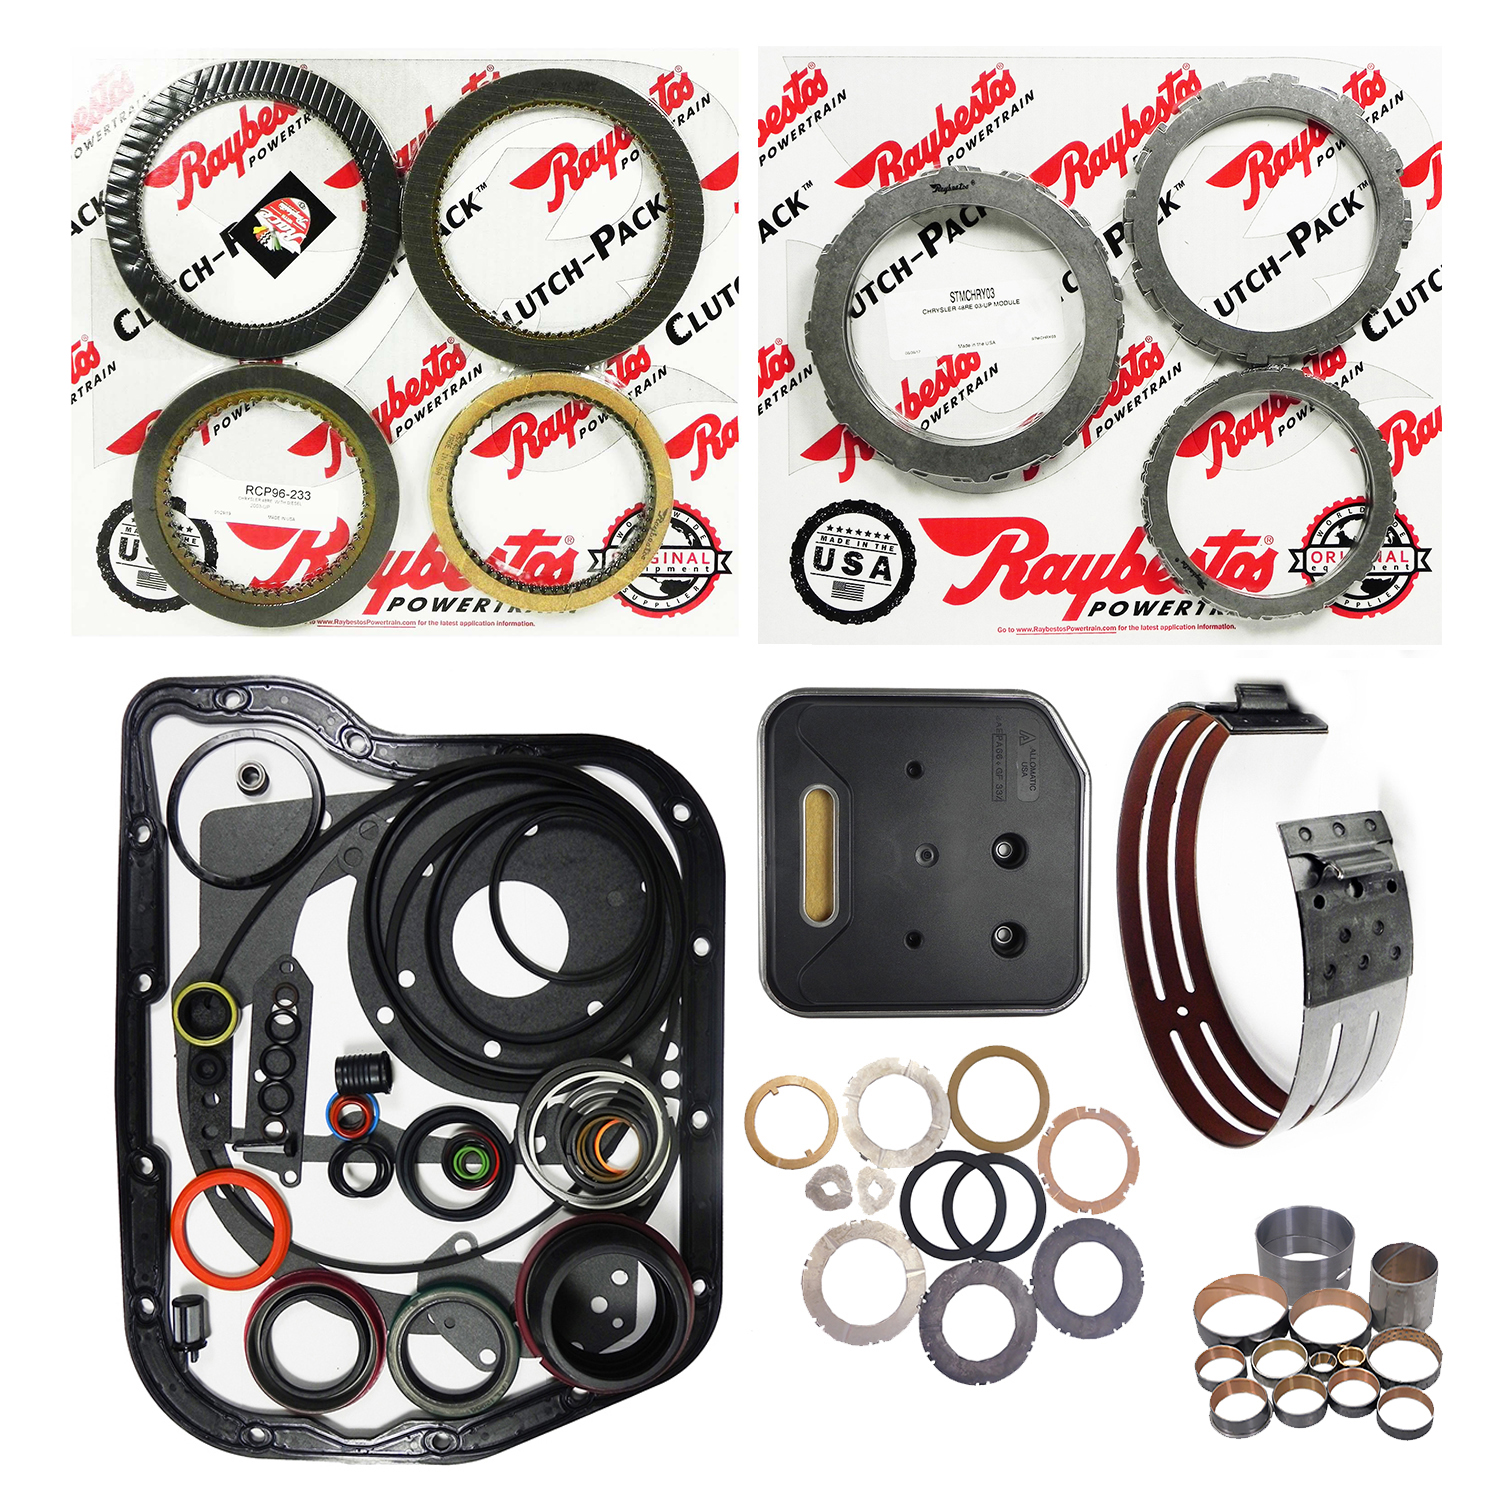 AZ22008GW | 2003-ON Super Rebuild Kit